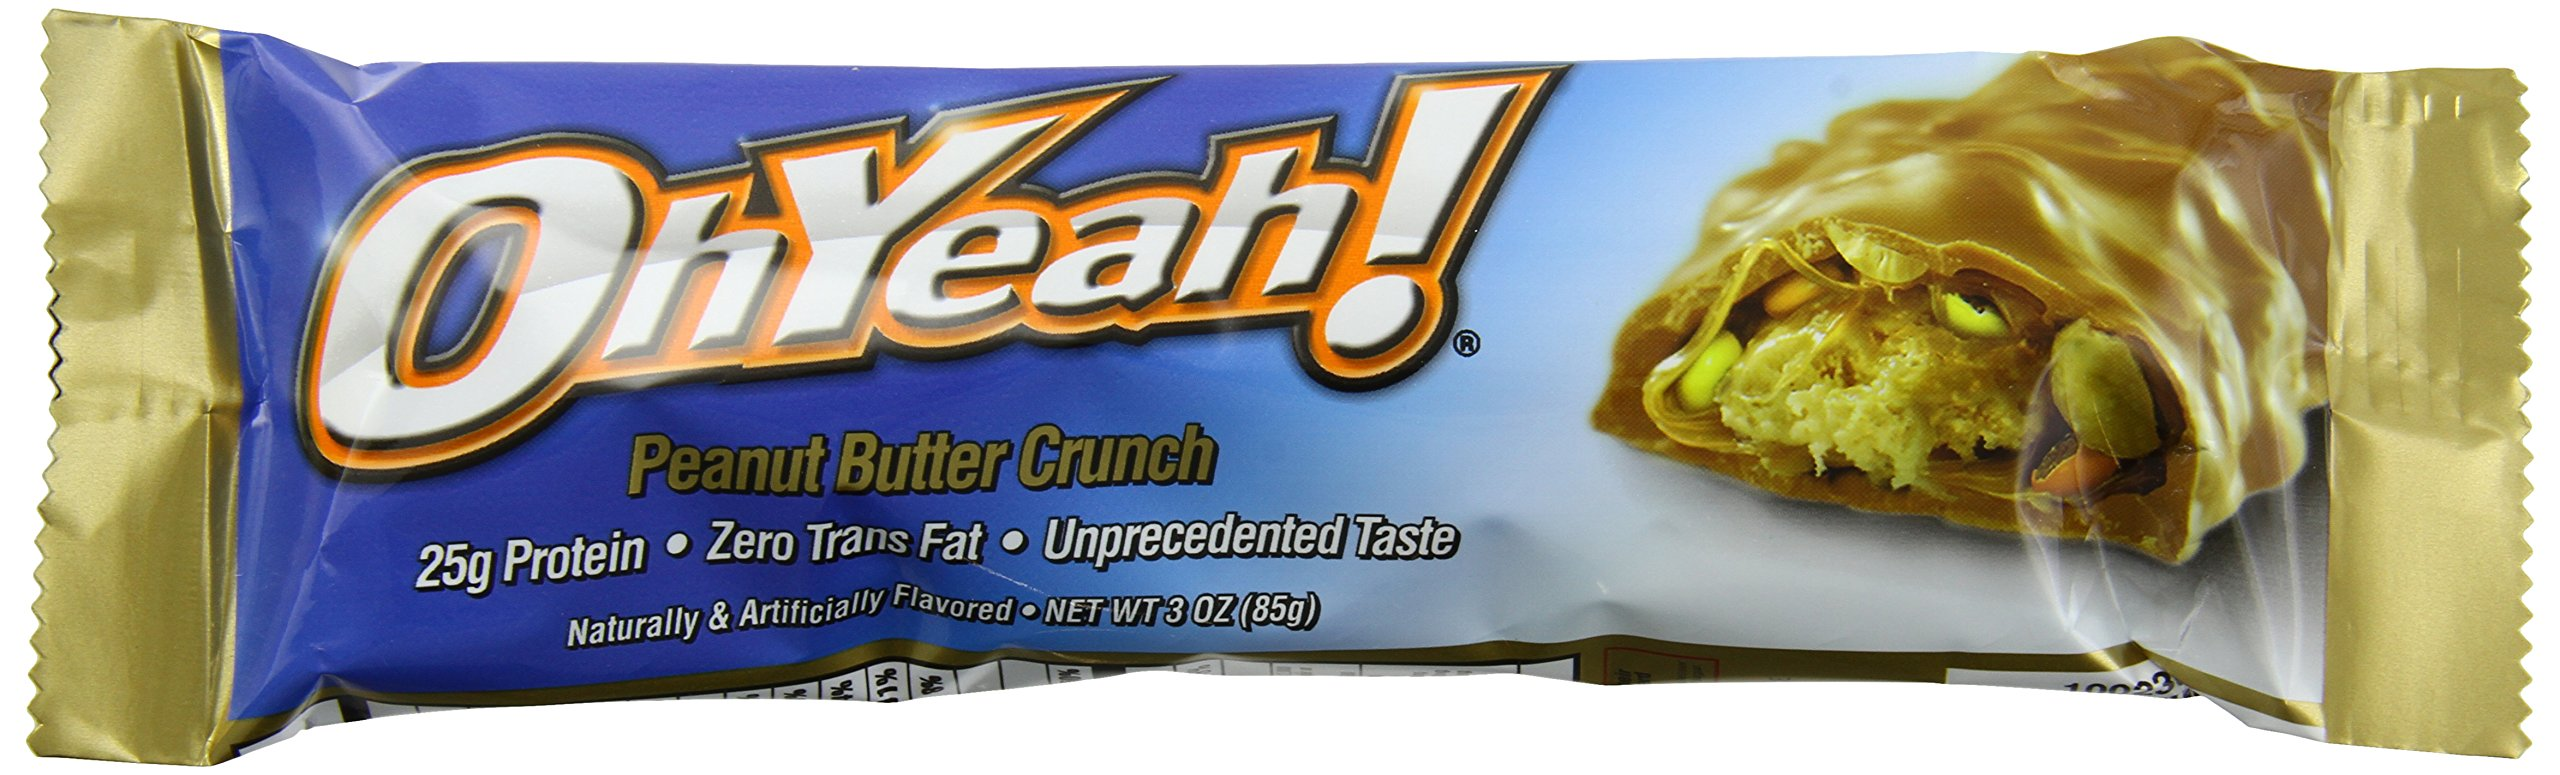 ISS Research Ohyeah! Bars, Peanut Butter Crunch, 3 Oz, 12-Count (Pack of 4)